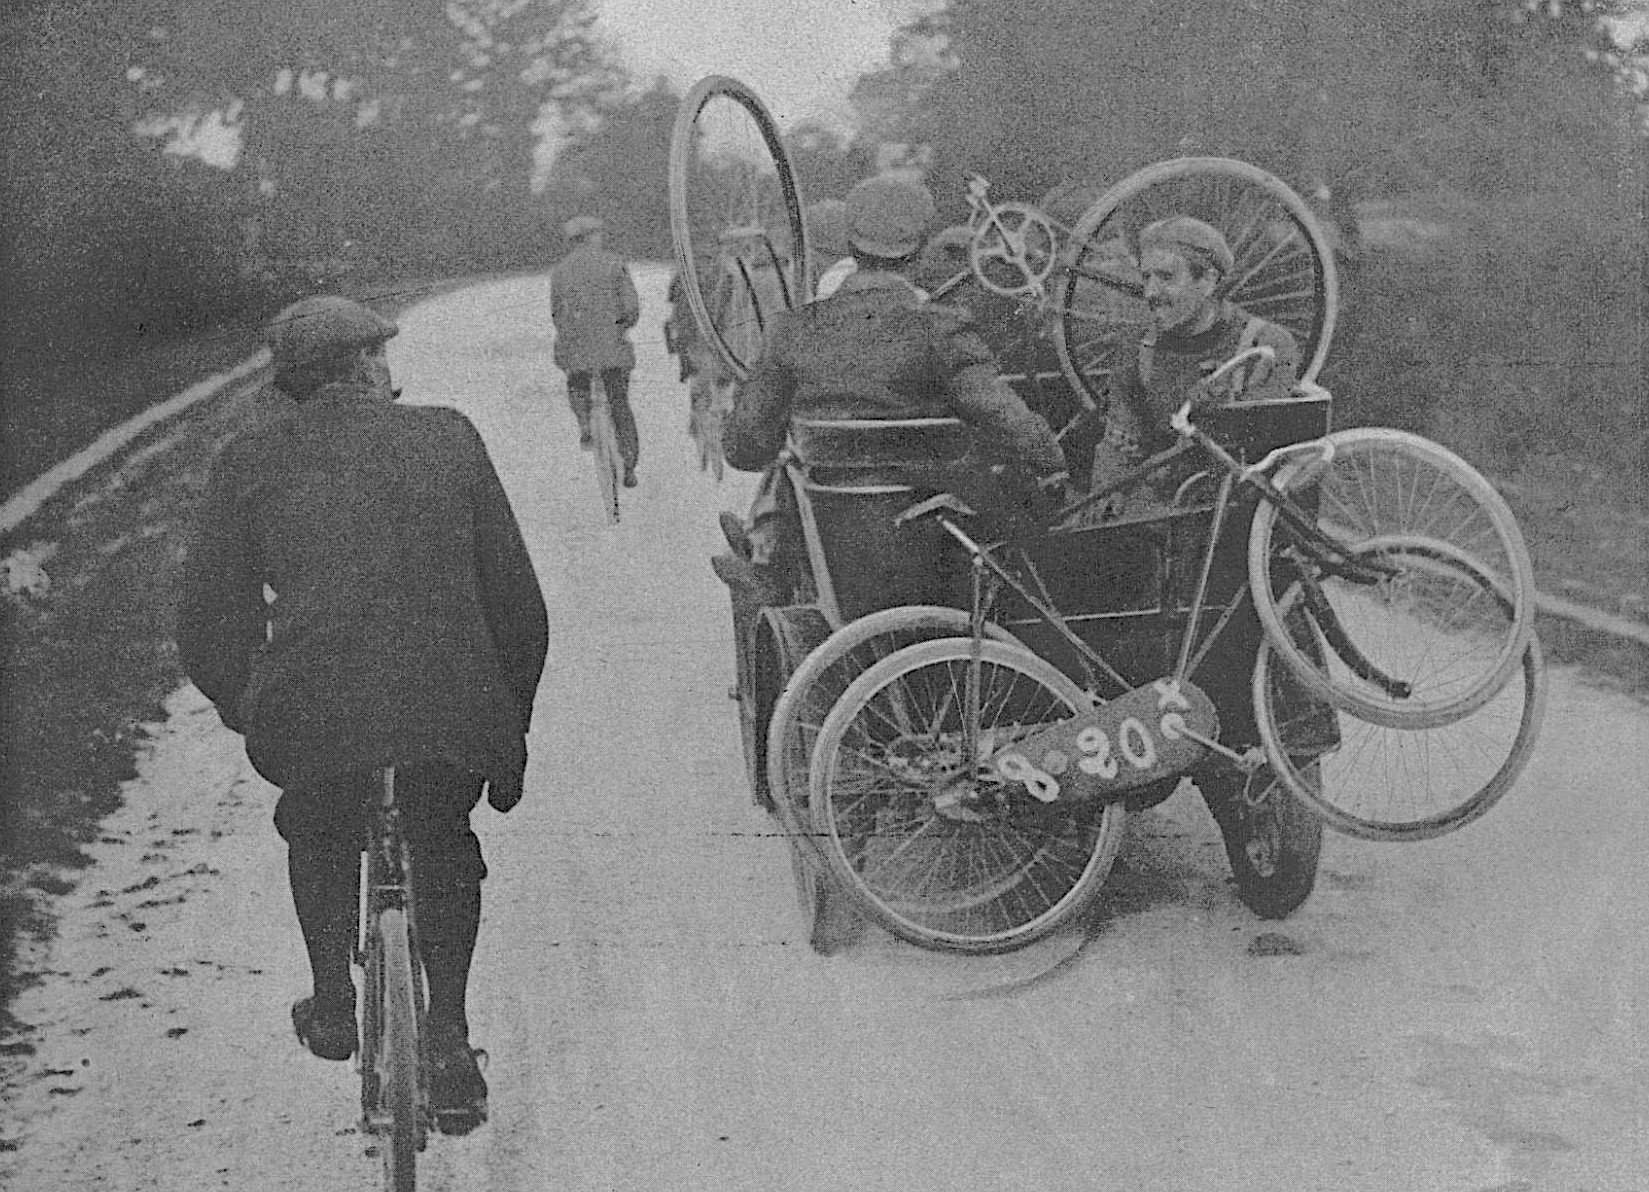 Lucien Lesna during the Paris-Brest-Paris 1901 edition